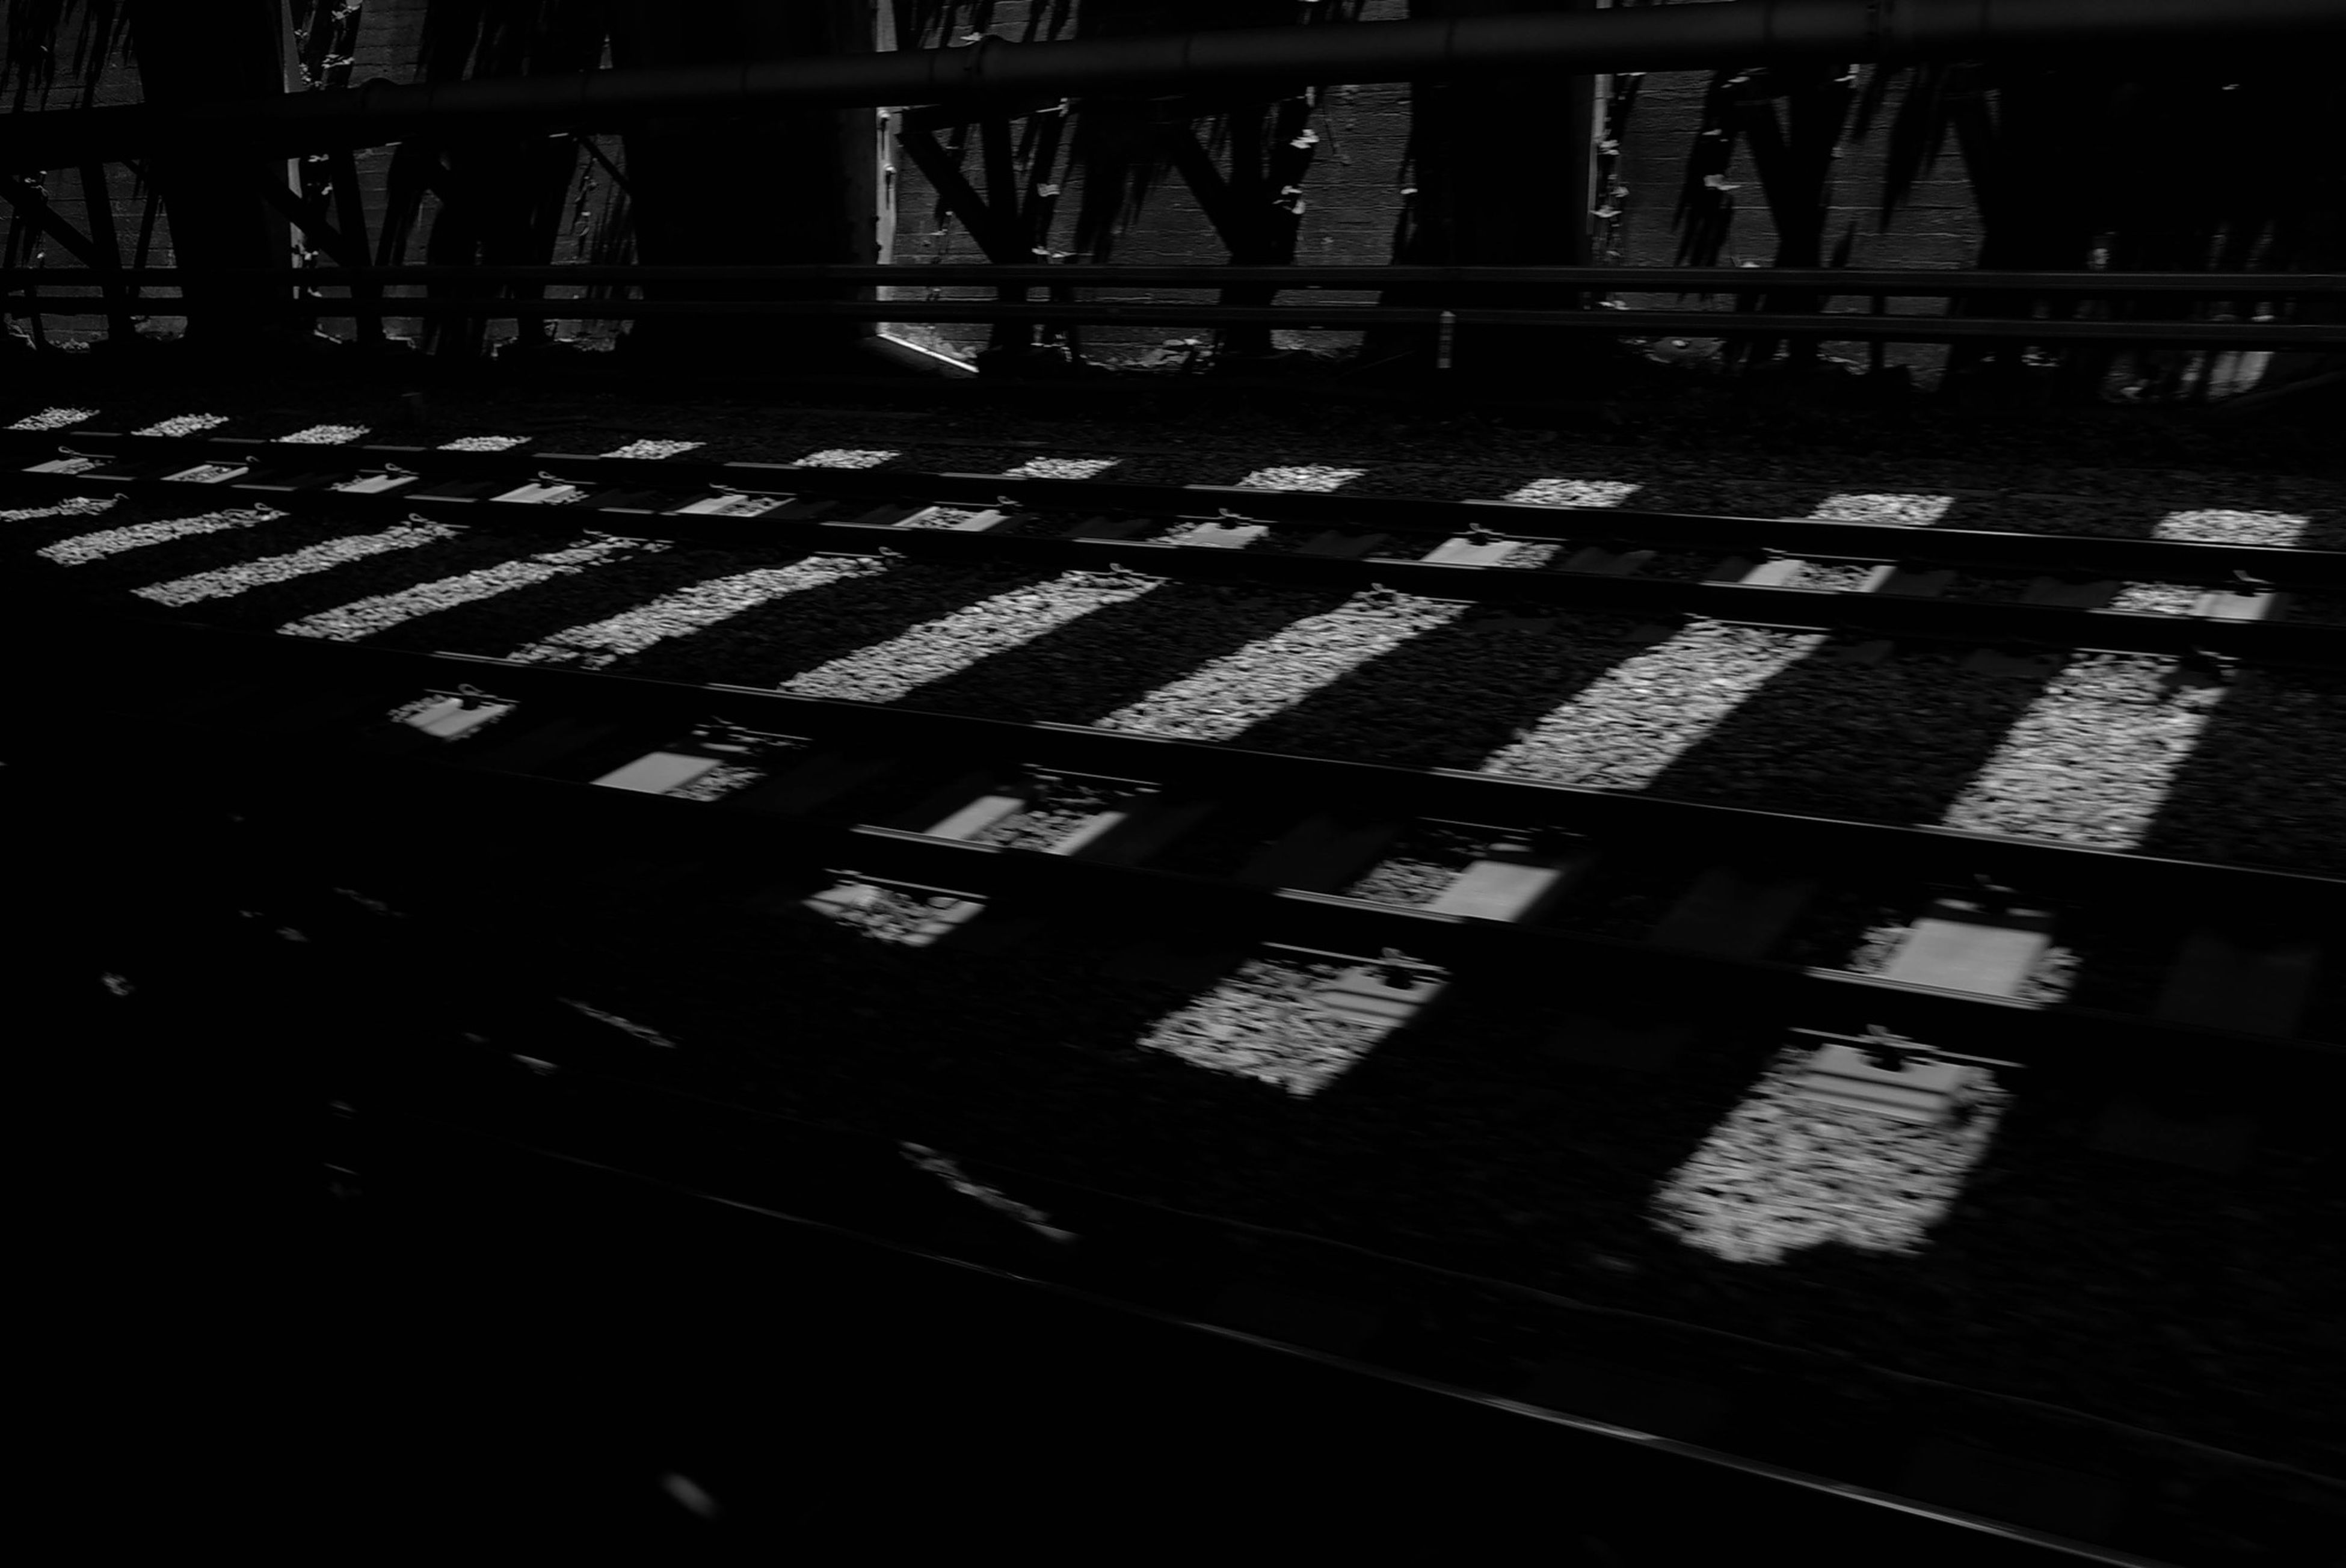 sunlight, metal, shadow, railing, high angle view, indoors, wood - material, pattern, metallic, day, no people, fence, built structure, silhouette, close-up, steps, architecture, auto post production filter, protection